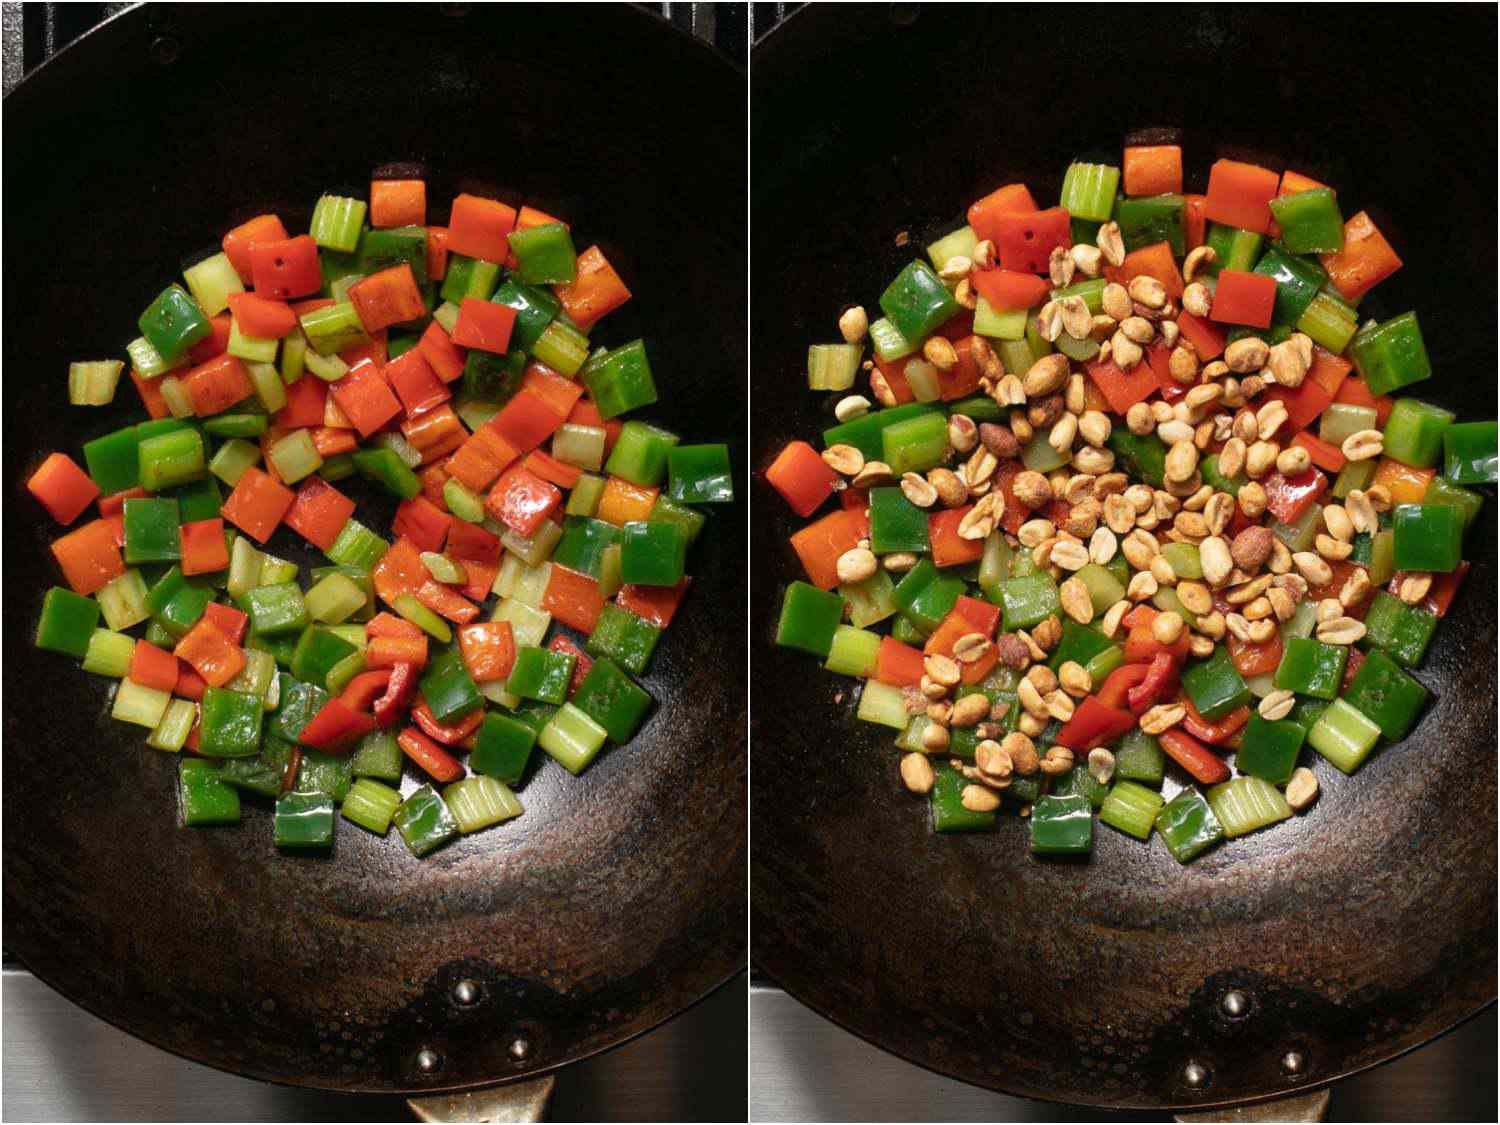 Photo collage showing stir-frying bell peppers and celery, and then adding peanuts, for takeout-style kung pao chicken.